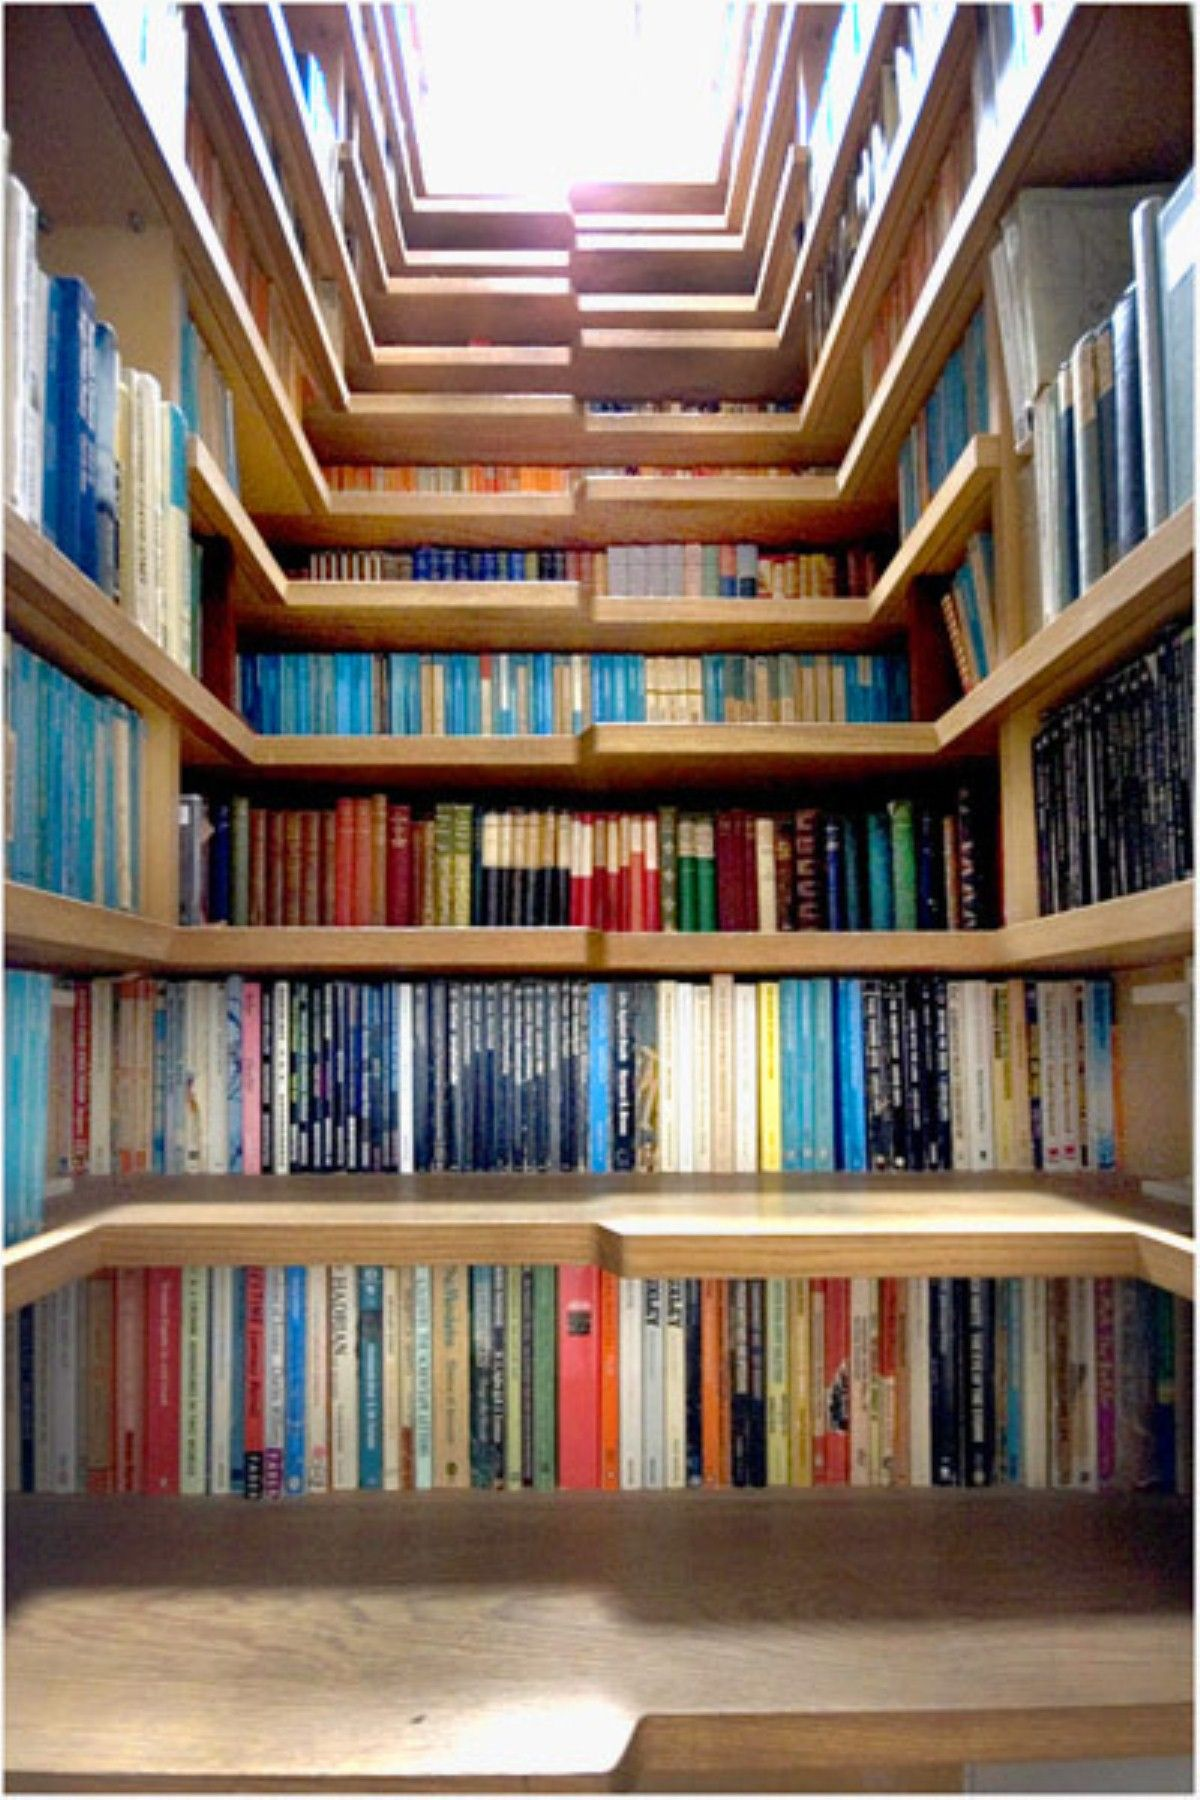 Genial Glorious Under Stairs Storage Pine Wood Unfinished For Book Storage Space  Saving Ideas As Decorate Small Home Library Design